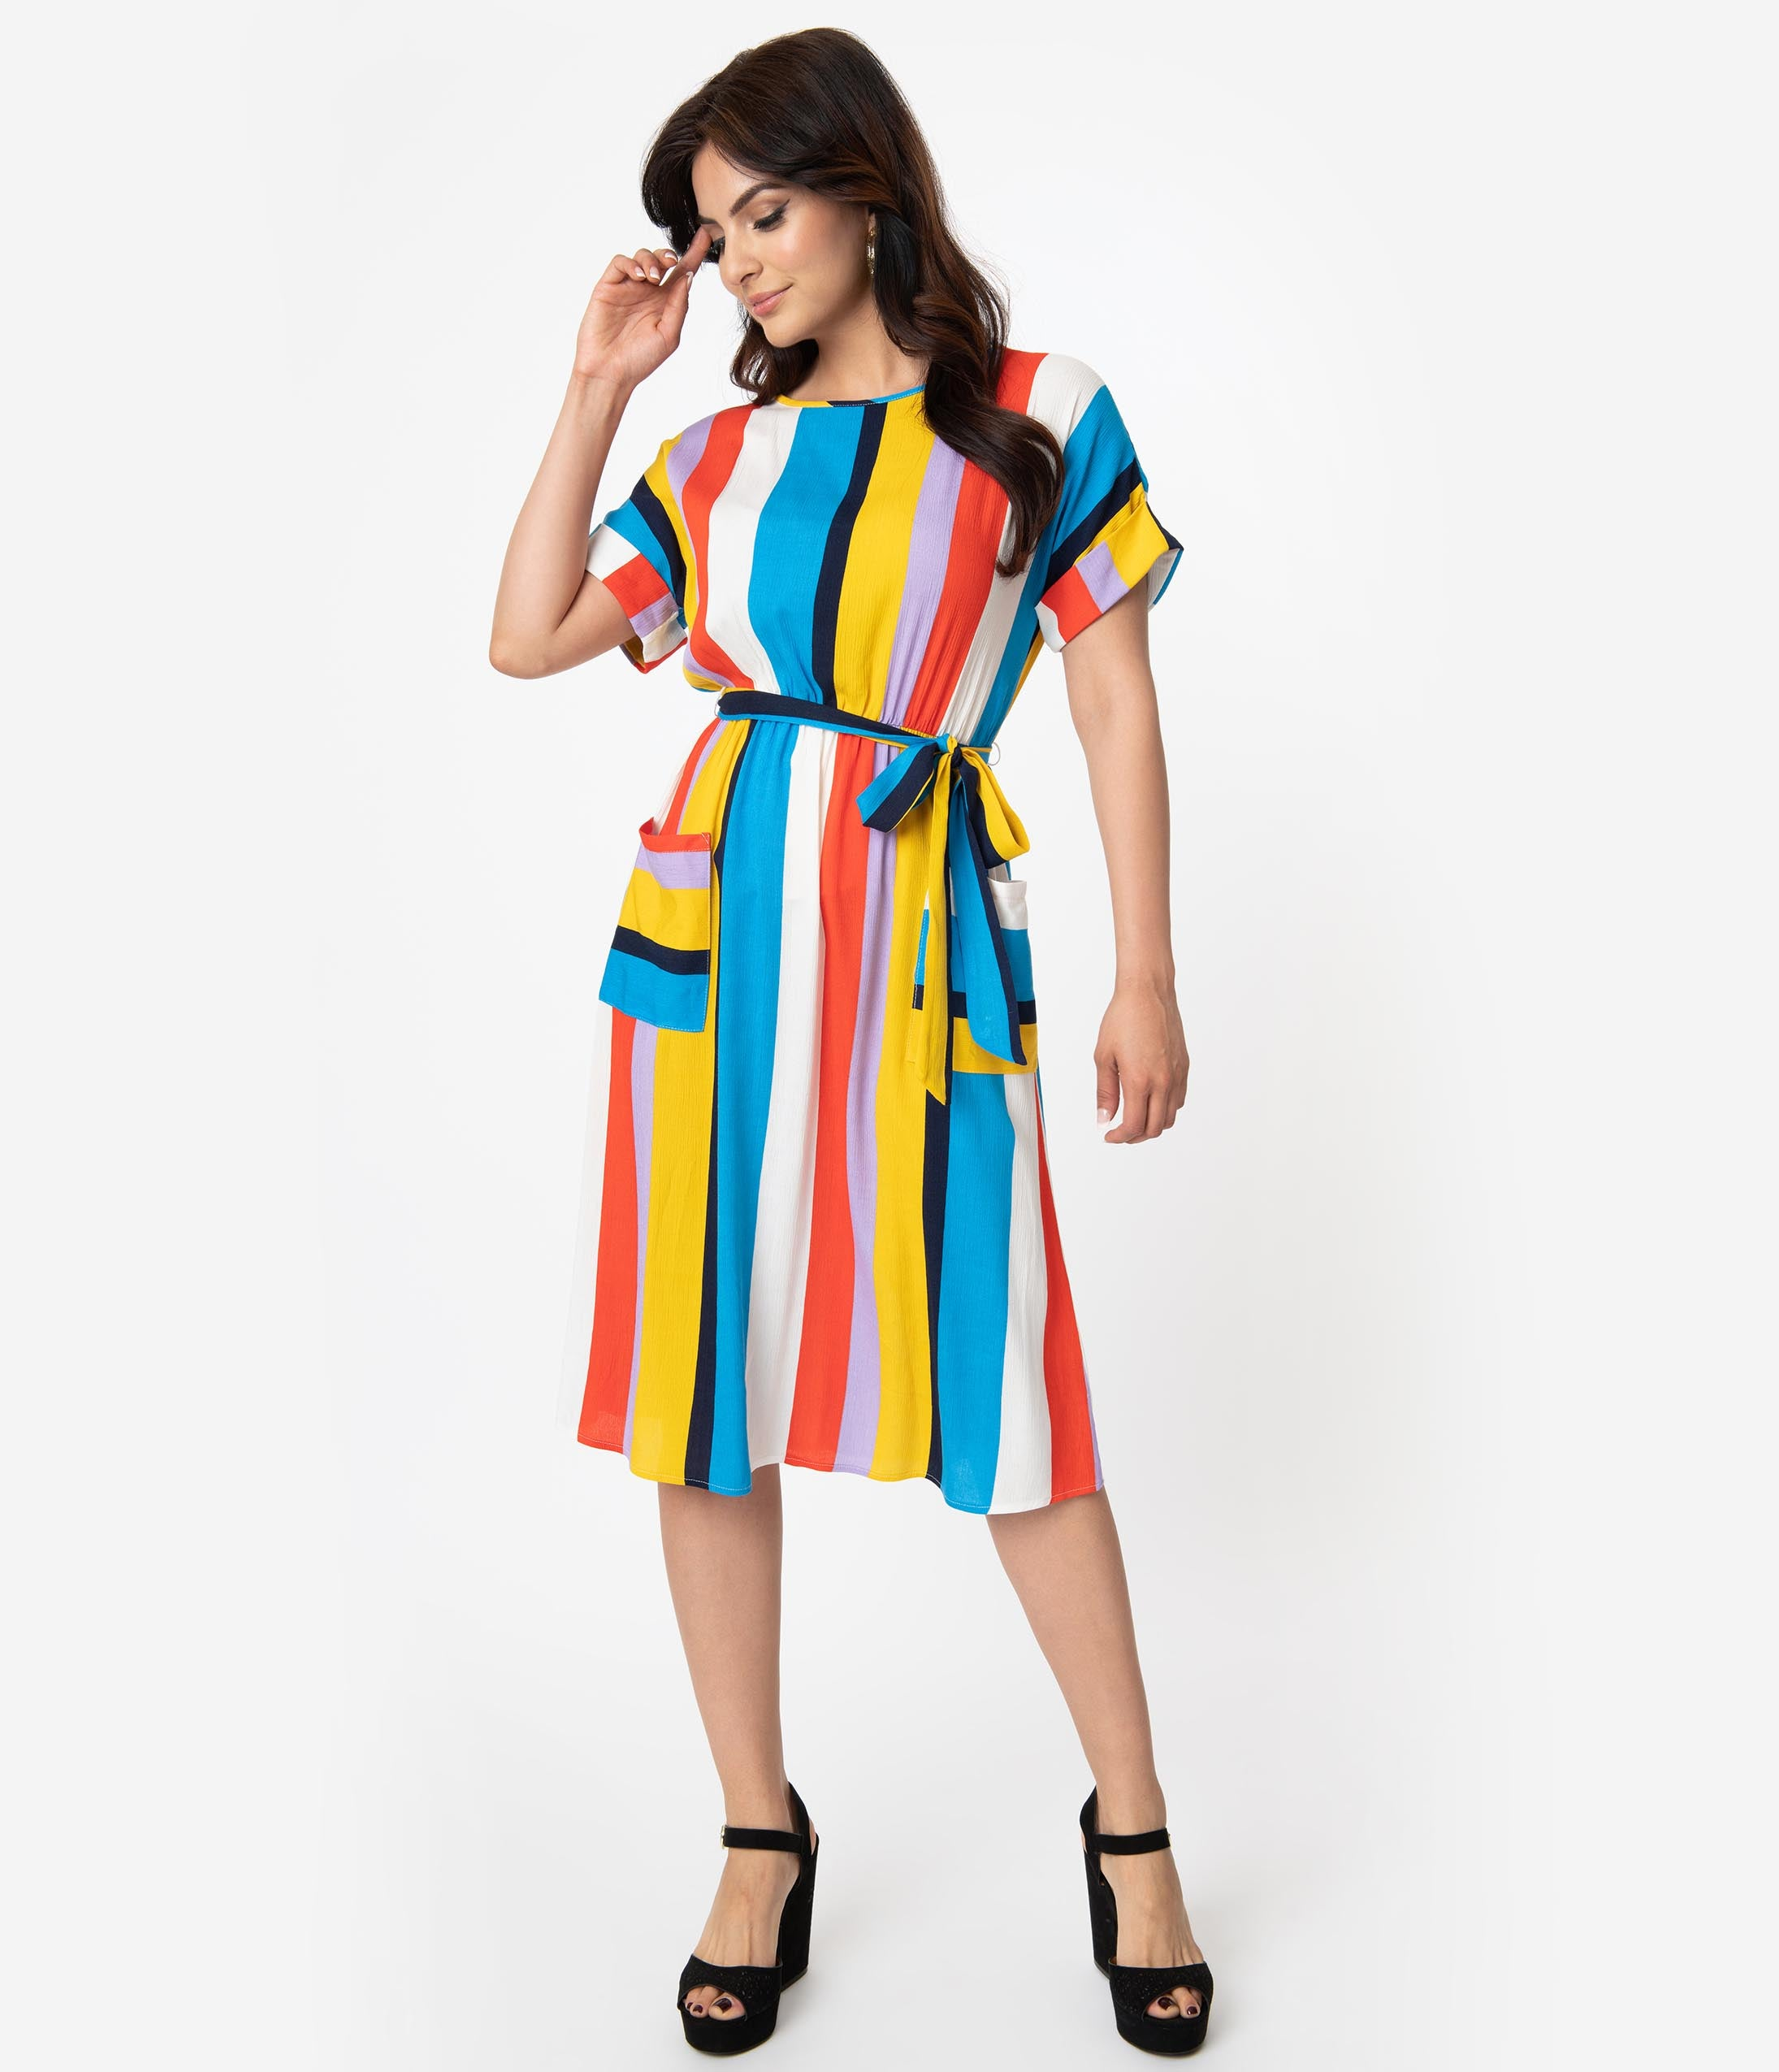 Swing Dance Dresses | Lindy Hop Dresses & Clothing Retro Style Blue  Yellow Striped Short Sleeve Midi Dress $35.00 AT vintagedancer.com